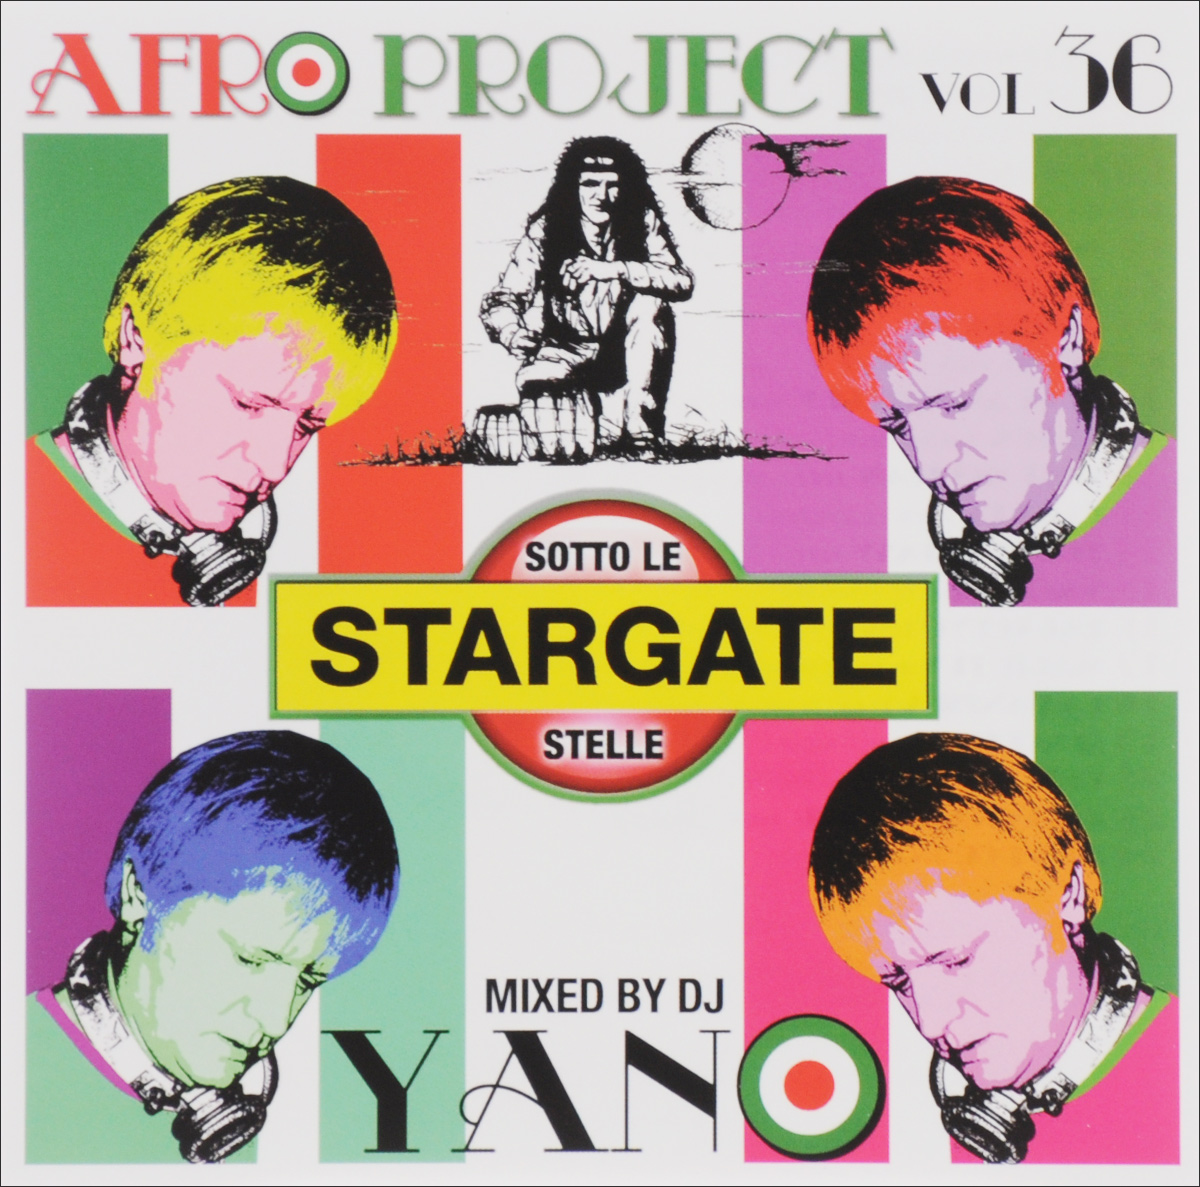 Dj Yano Dj Yano. Afro Project. Vol. 36 цена и фото